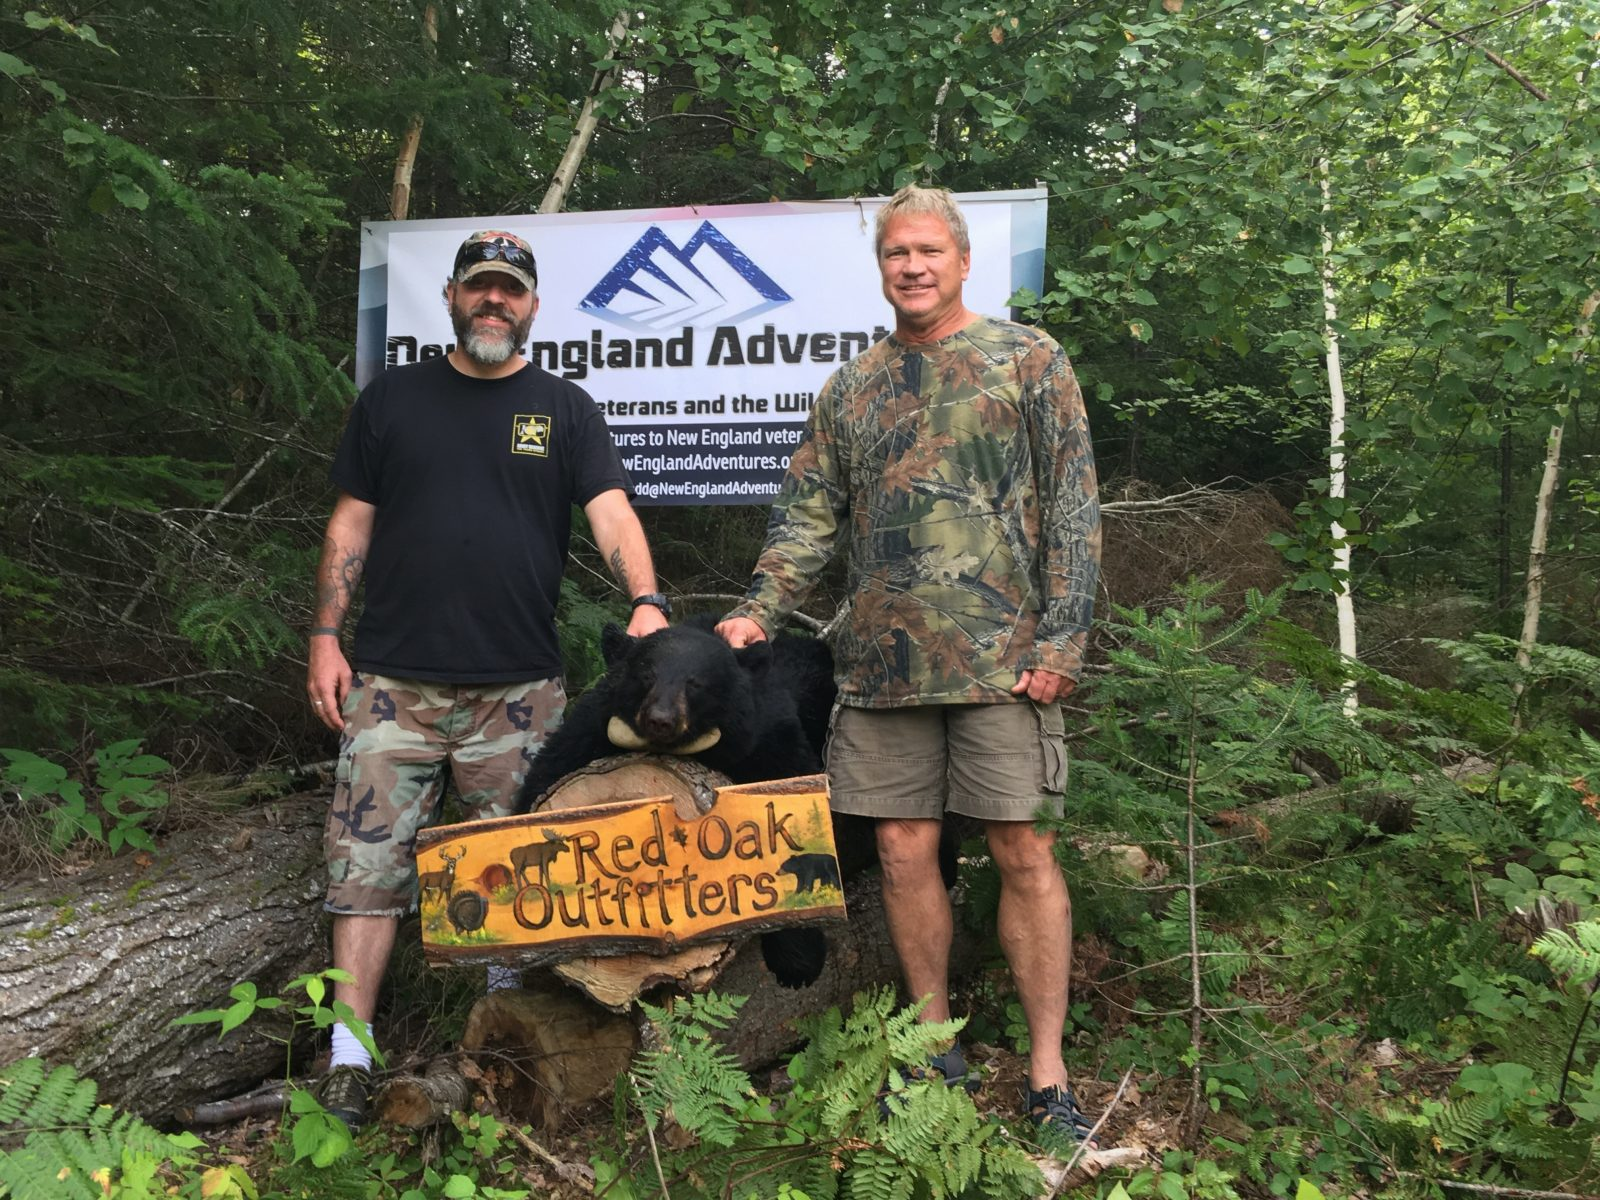 Wild game dinner funds free programs for vets